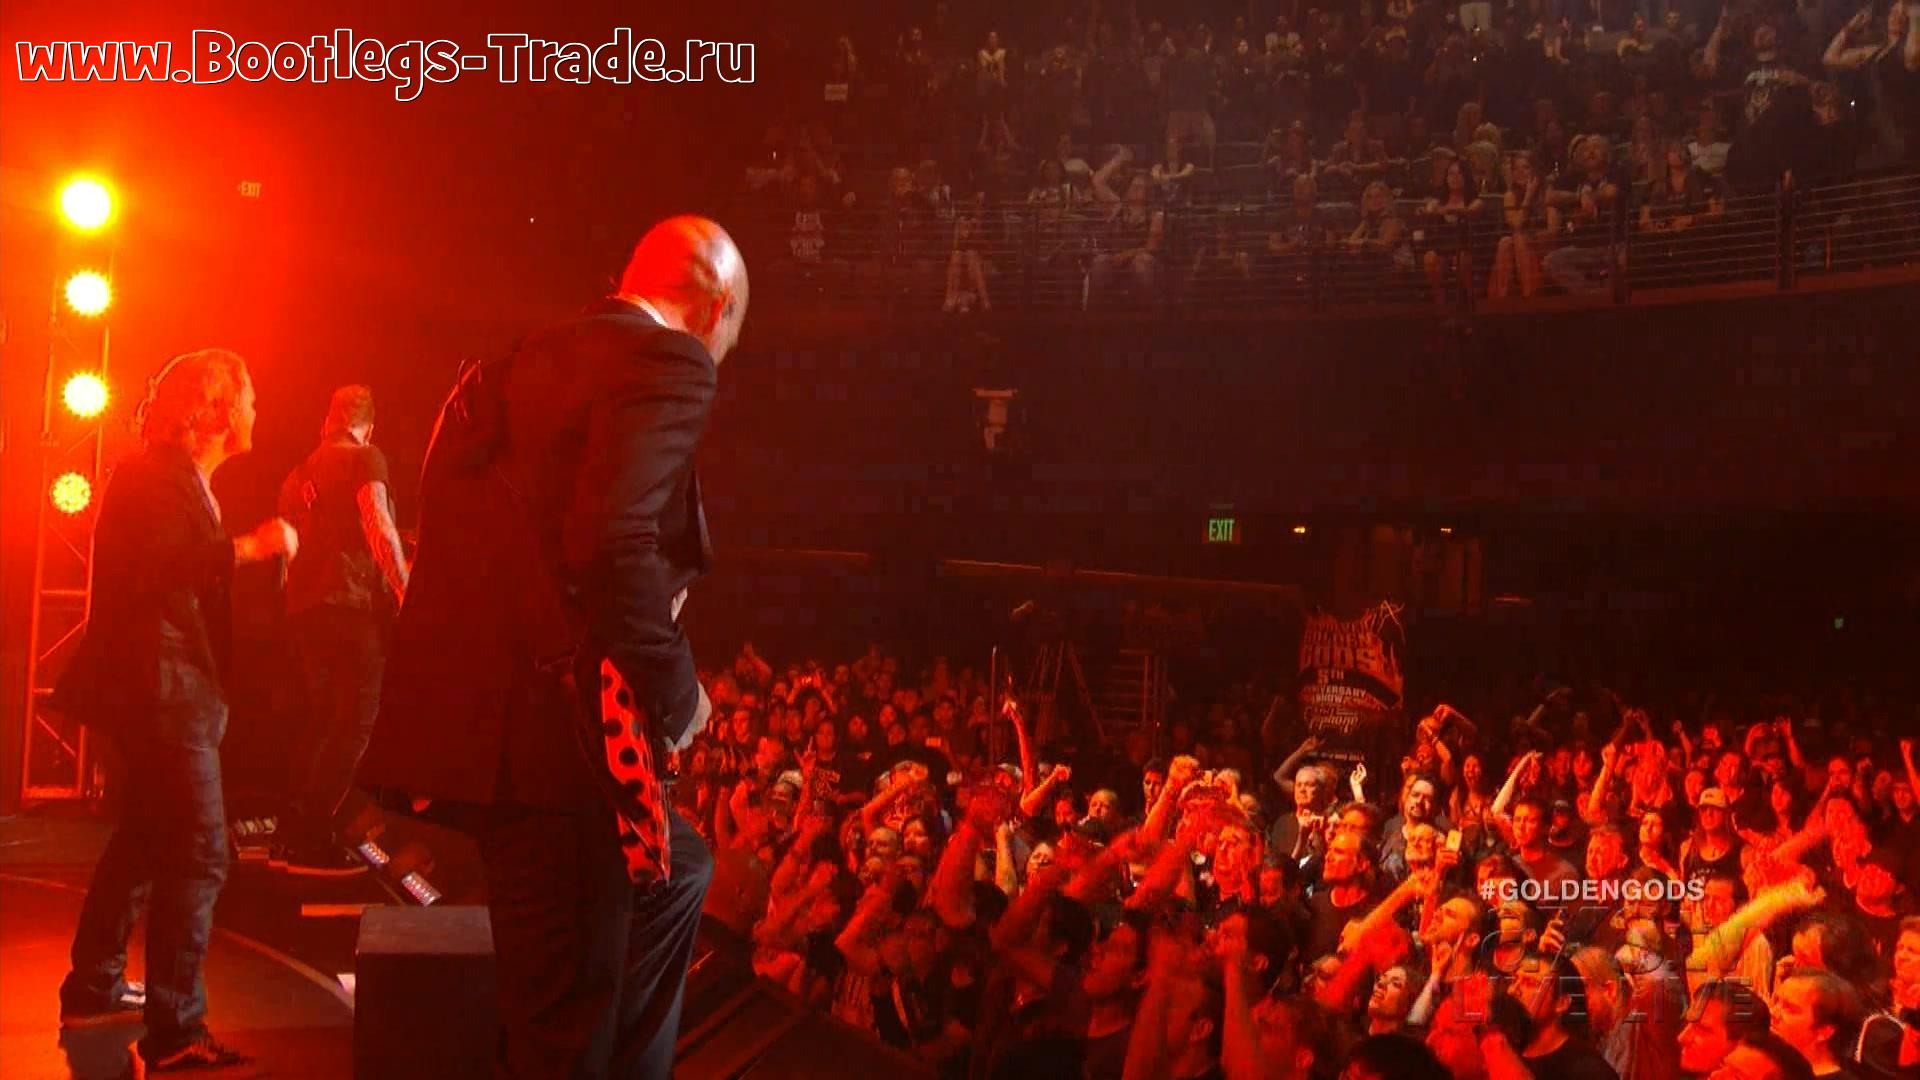 Stone Sour 2013-05-02 Revolver Golden Gods, Club Nokia, Los Angeles, CA (HD1080)